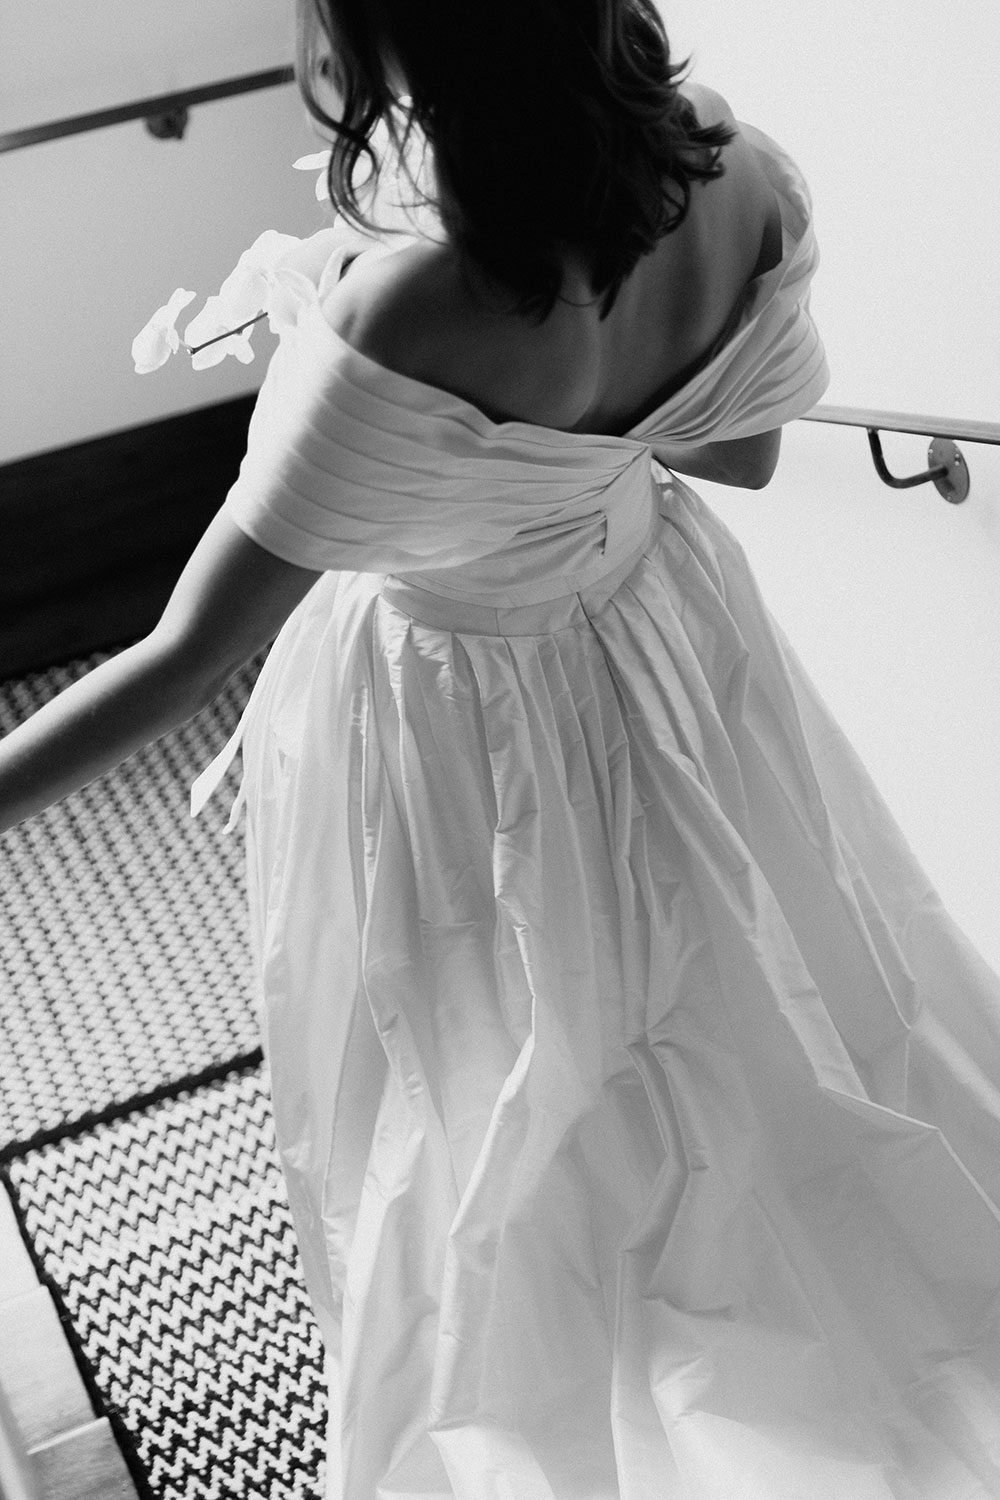 Bride wearing bespoke off shoulder bodice made with silk dupion and long train by NZ wedding dress maker Vinka Designs - black and white back view on stairs